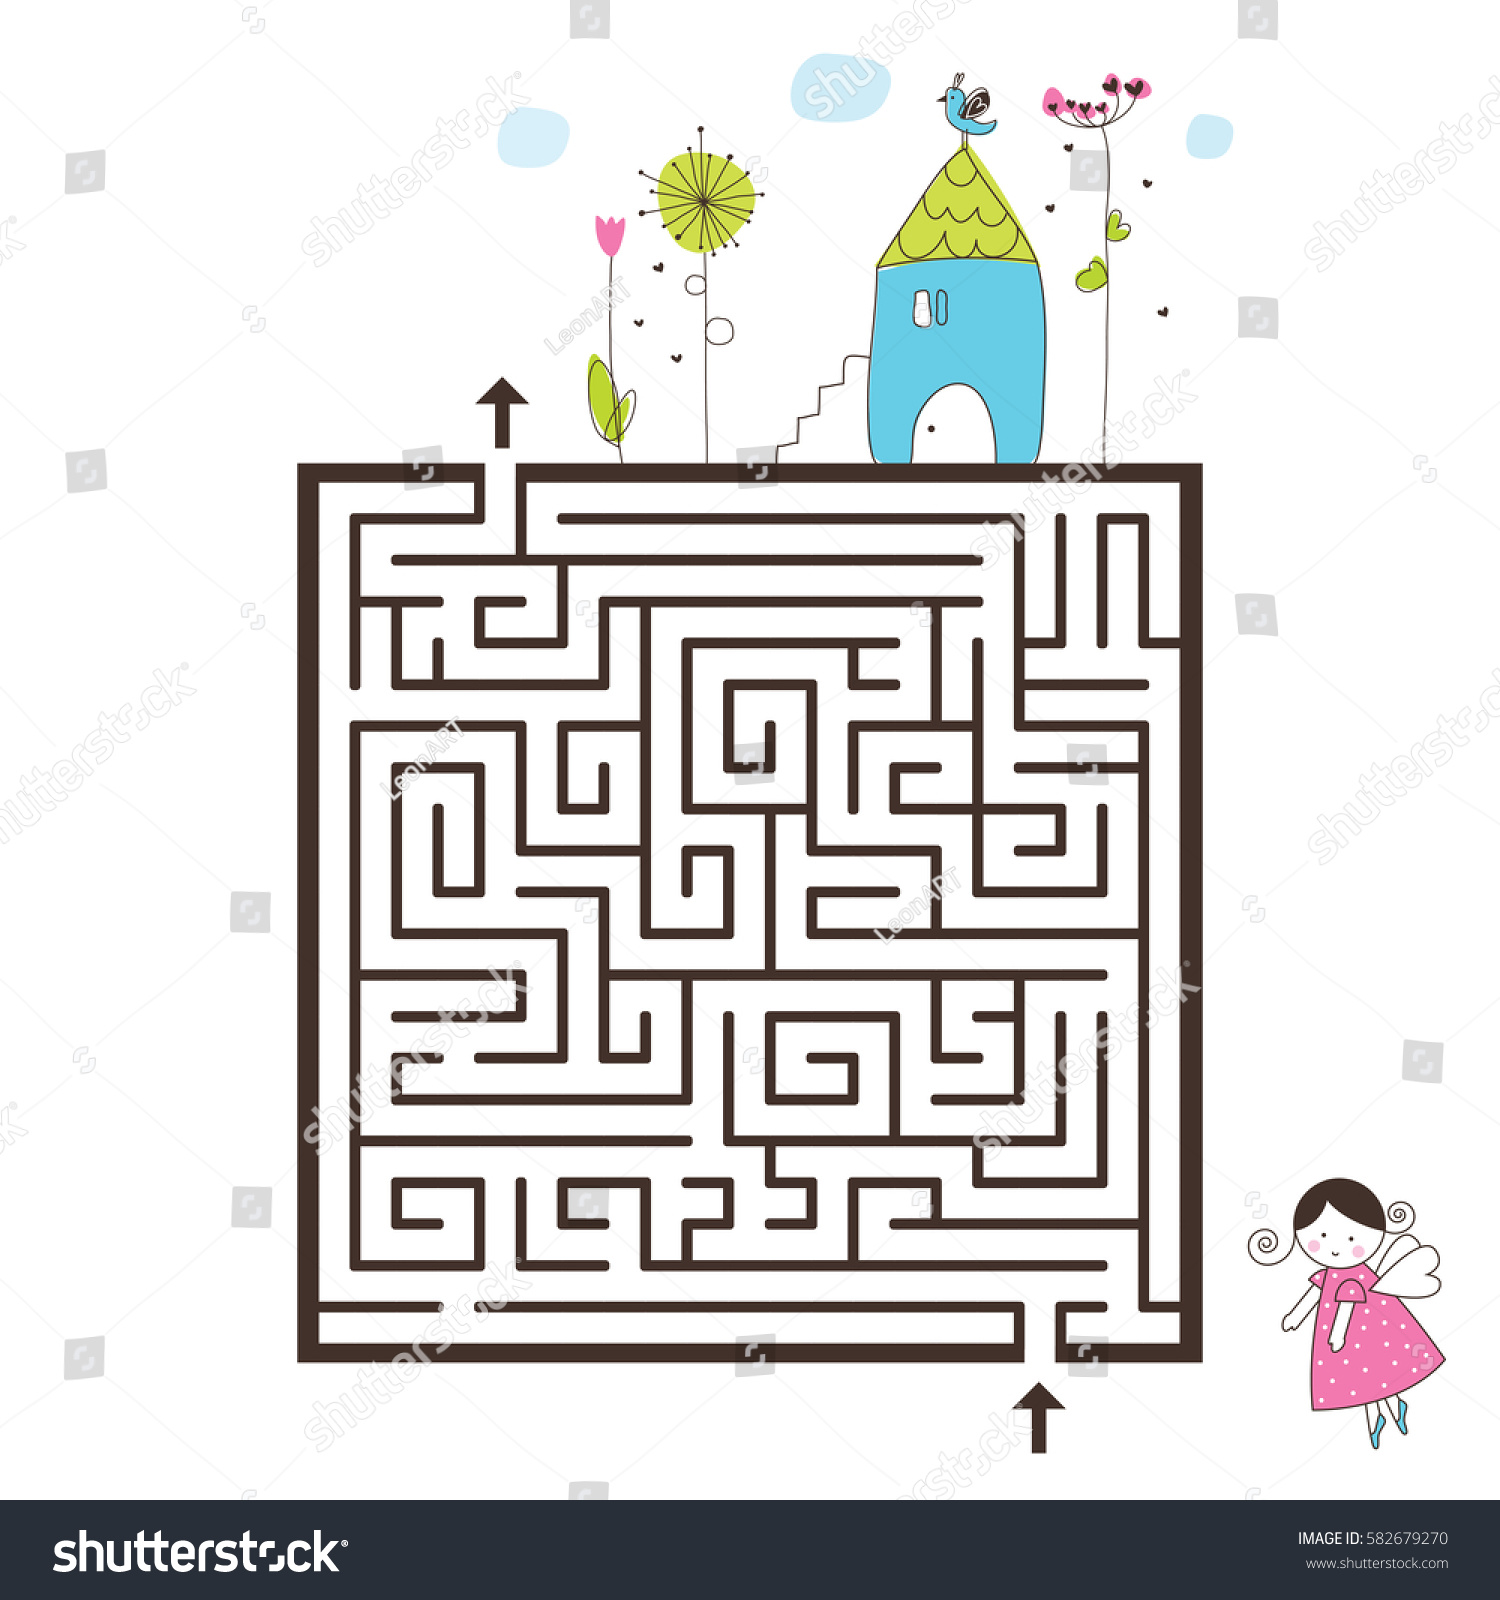 Labyrinth game image help find way stock vector 582679270 Find a house